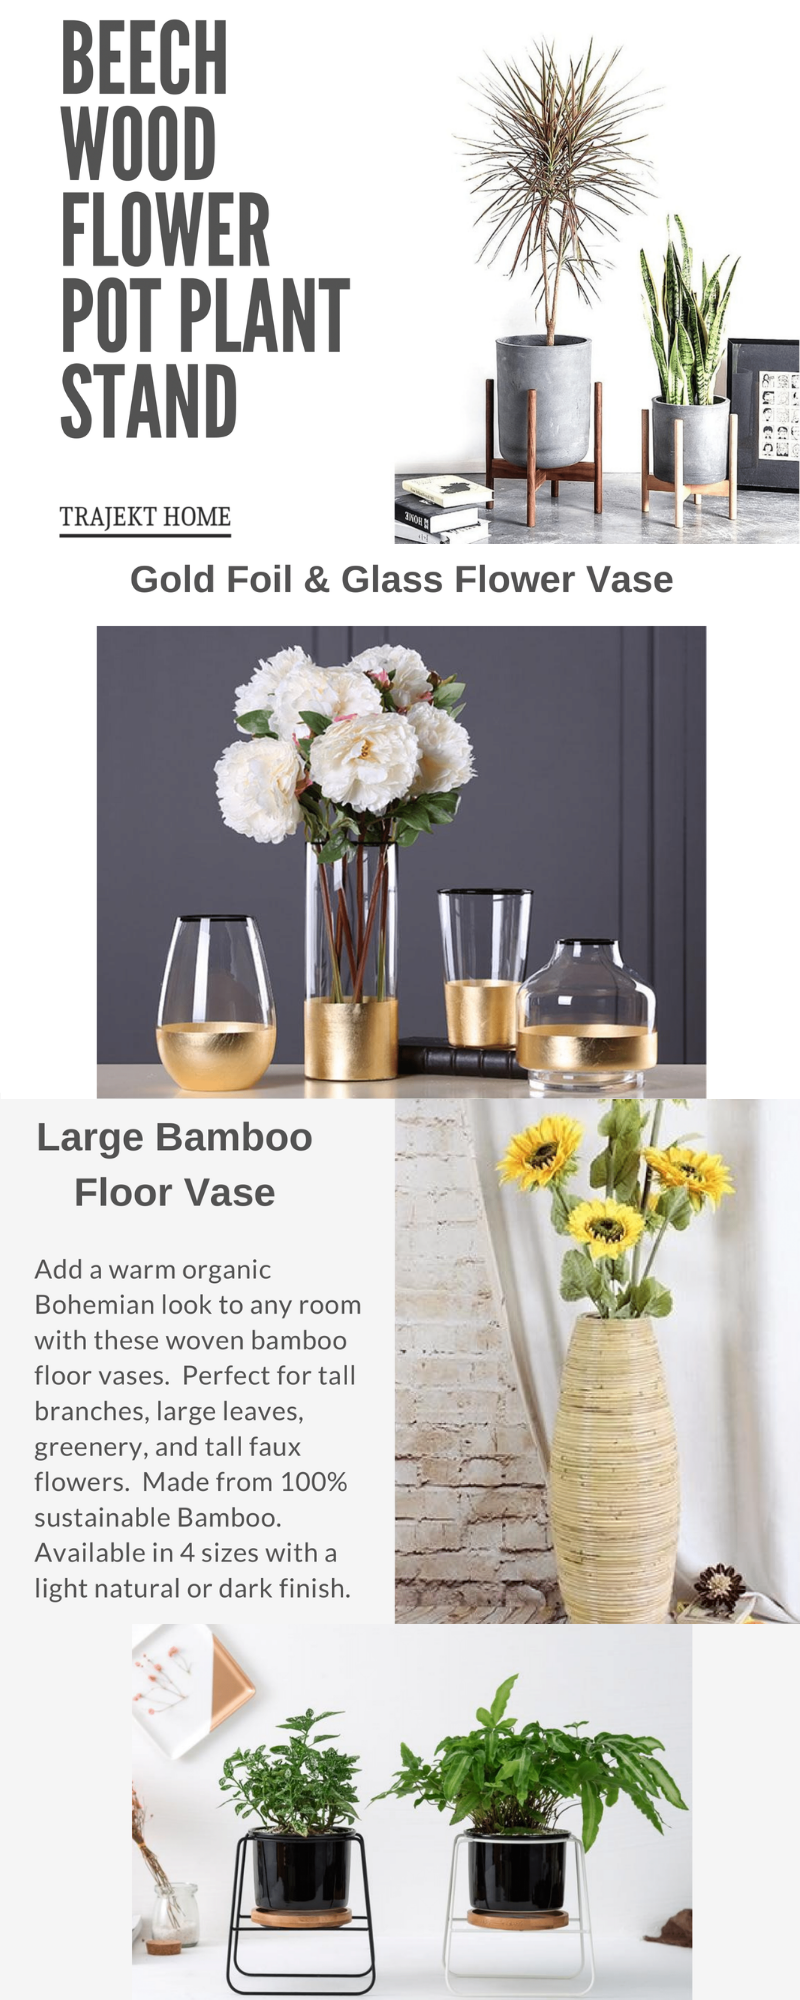 Buy Flower Vases online at low prices. Shop from a wide range of wooden ceramic flower vase metal and glass flower vase at TrajektHome. & Buy Wooden Metal and Ceramic Flower Glass Vase Online